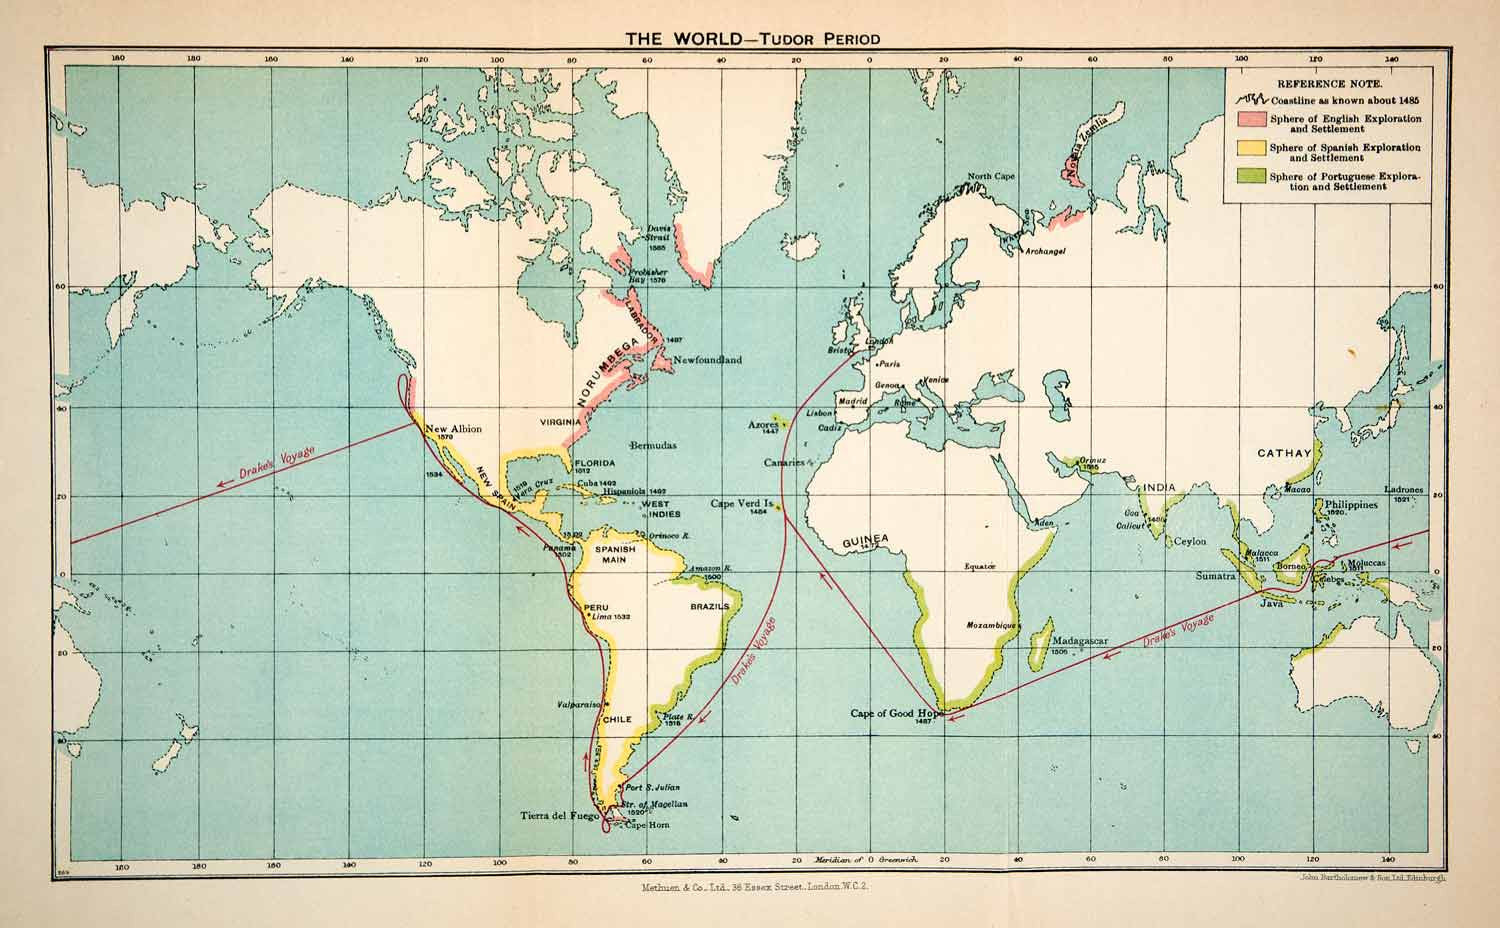 Time Map Of The World.1932 Lithograph Map World Tudor Time Period Drake Voyage Norumbega